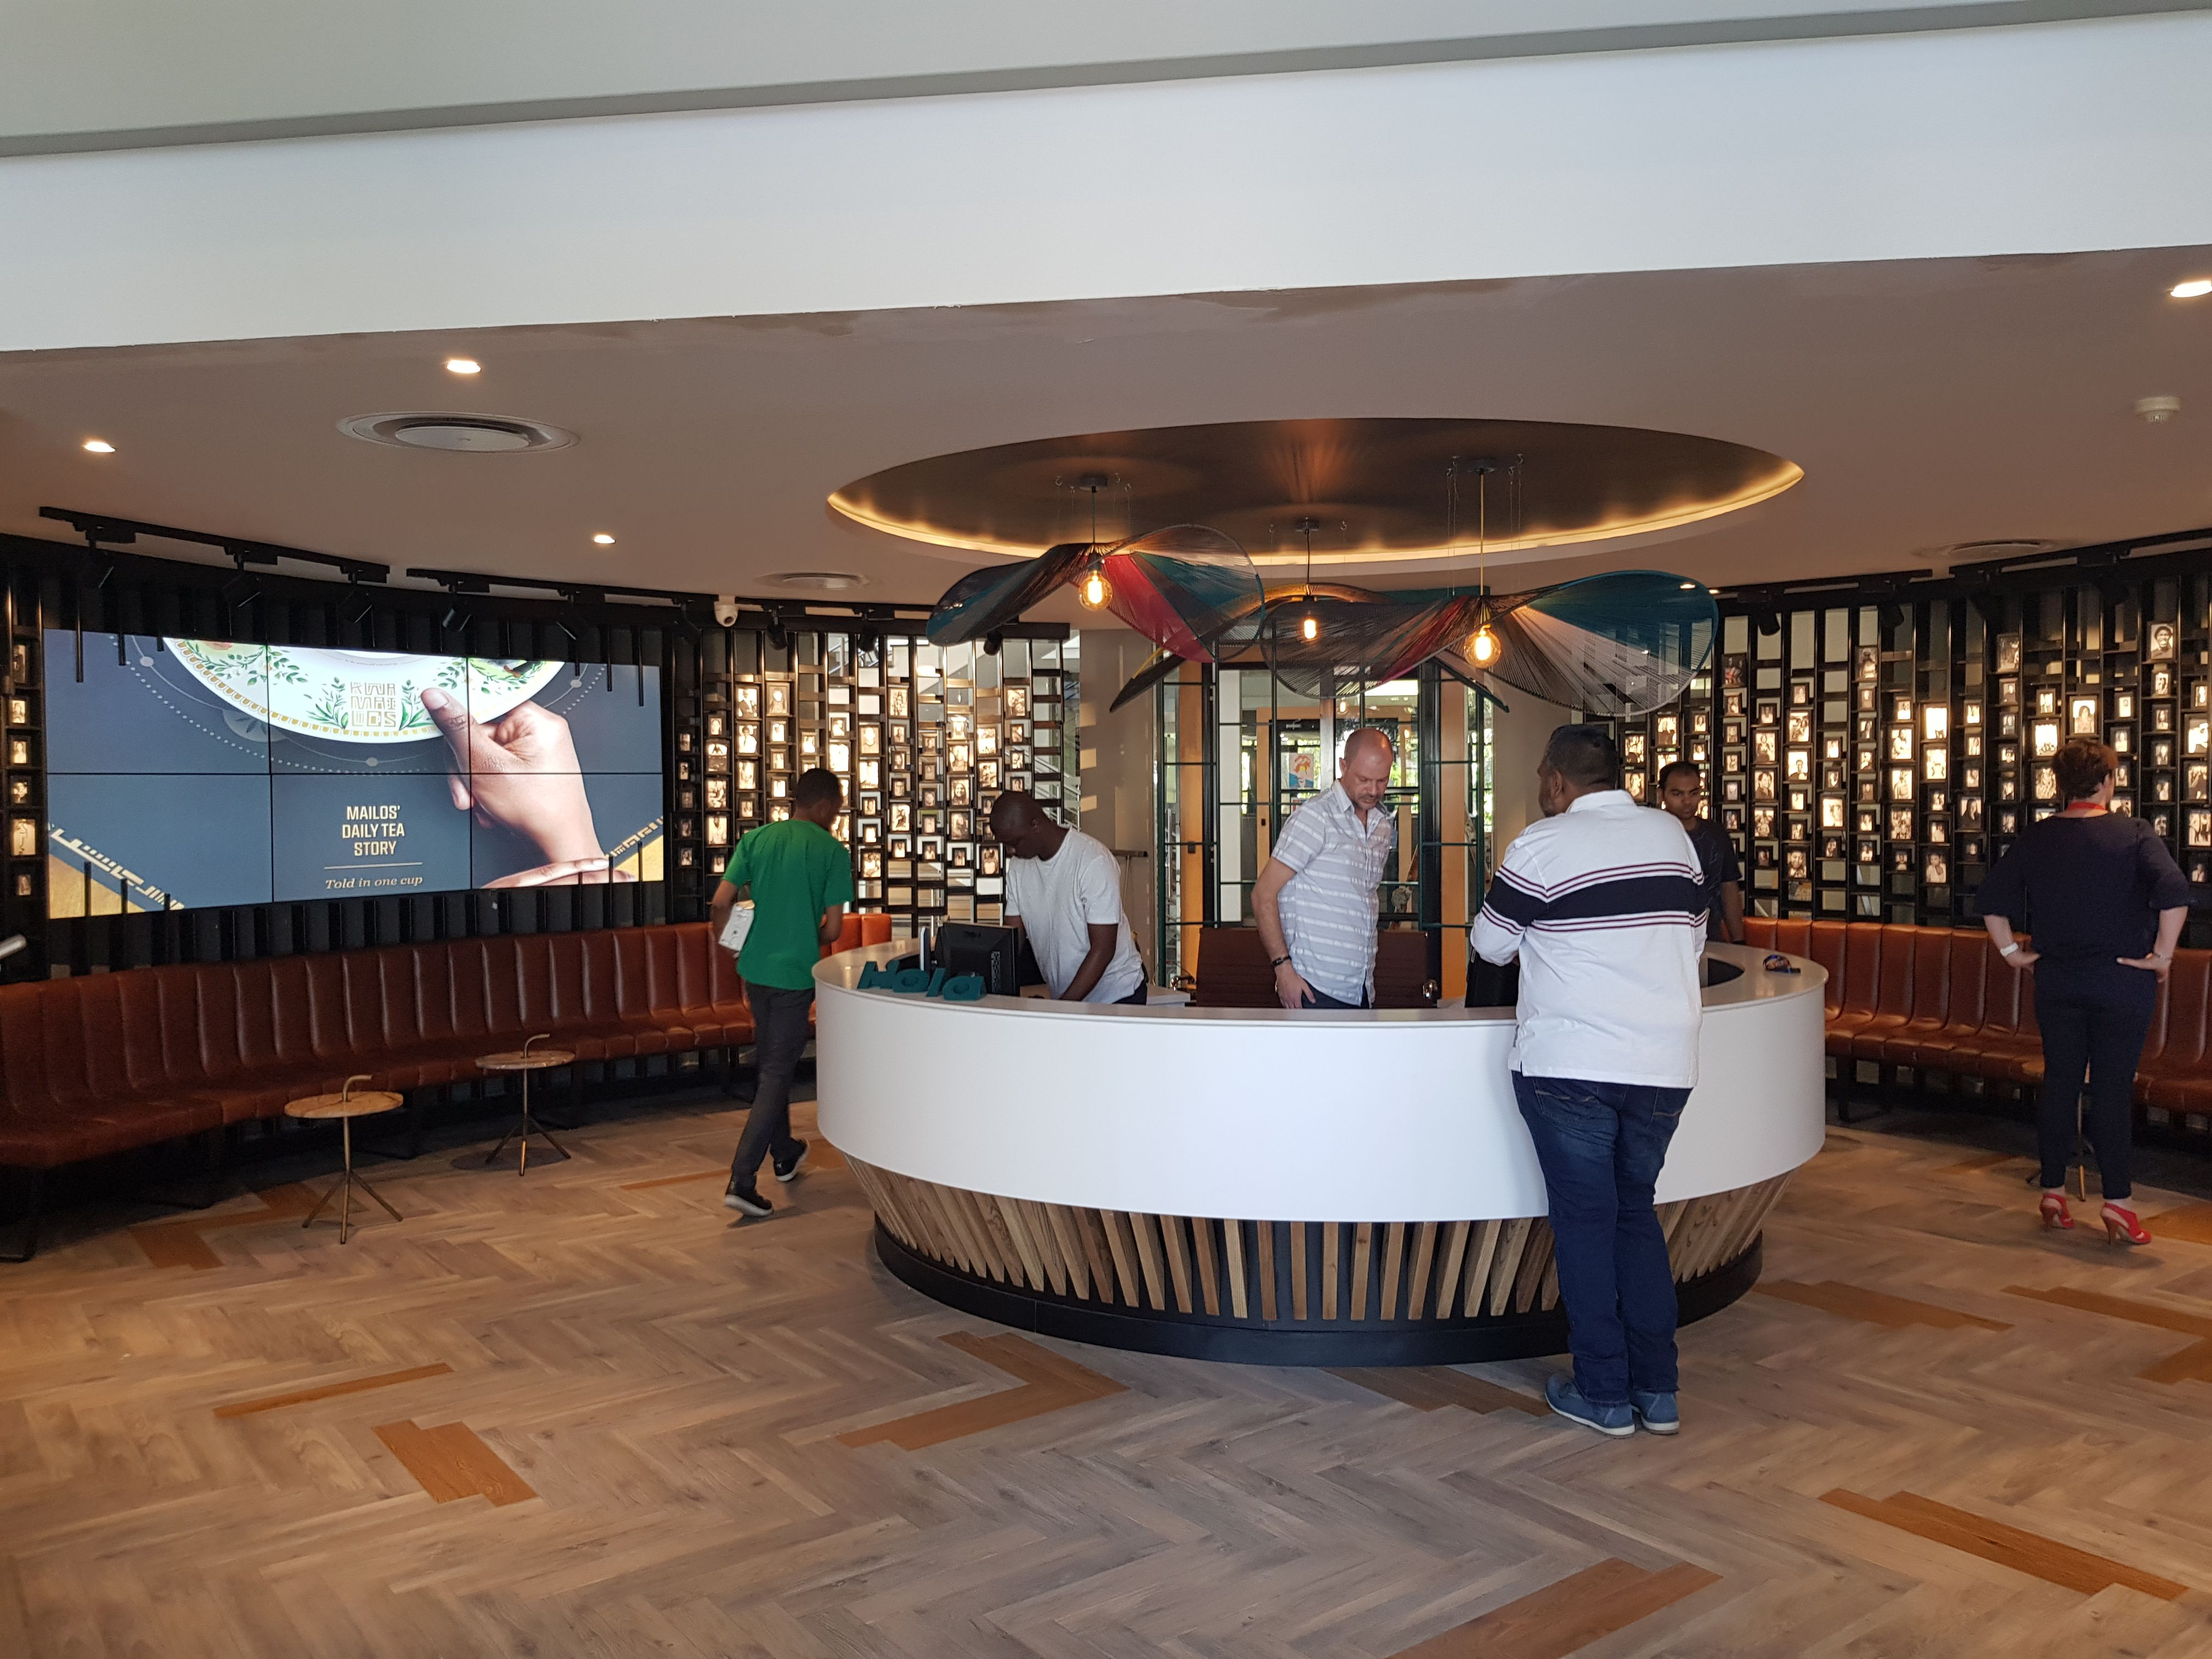 Reception counter. Coffee shop and informal meeting space